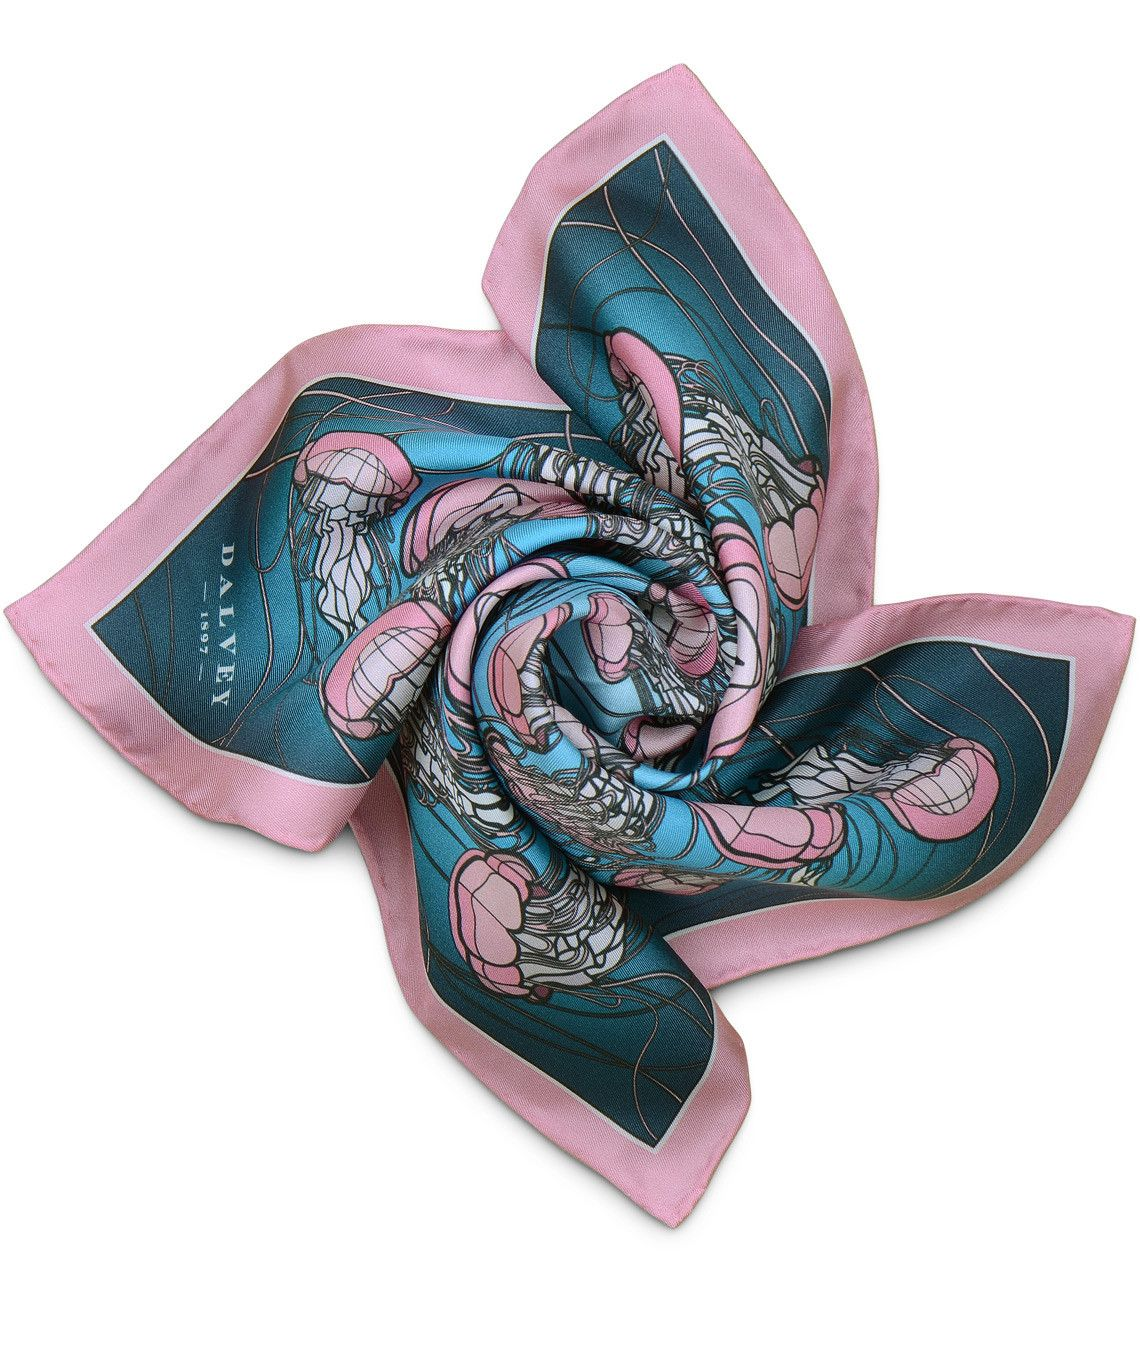 Pocket Square: Charybdis, Pink & Blue | Men's Gifts